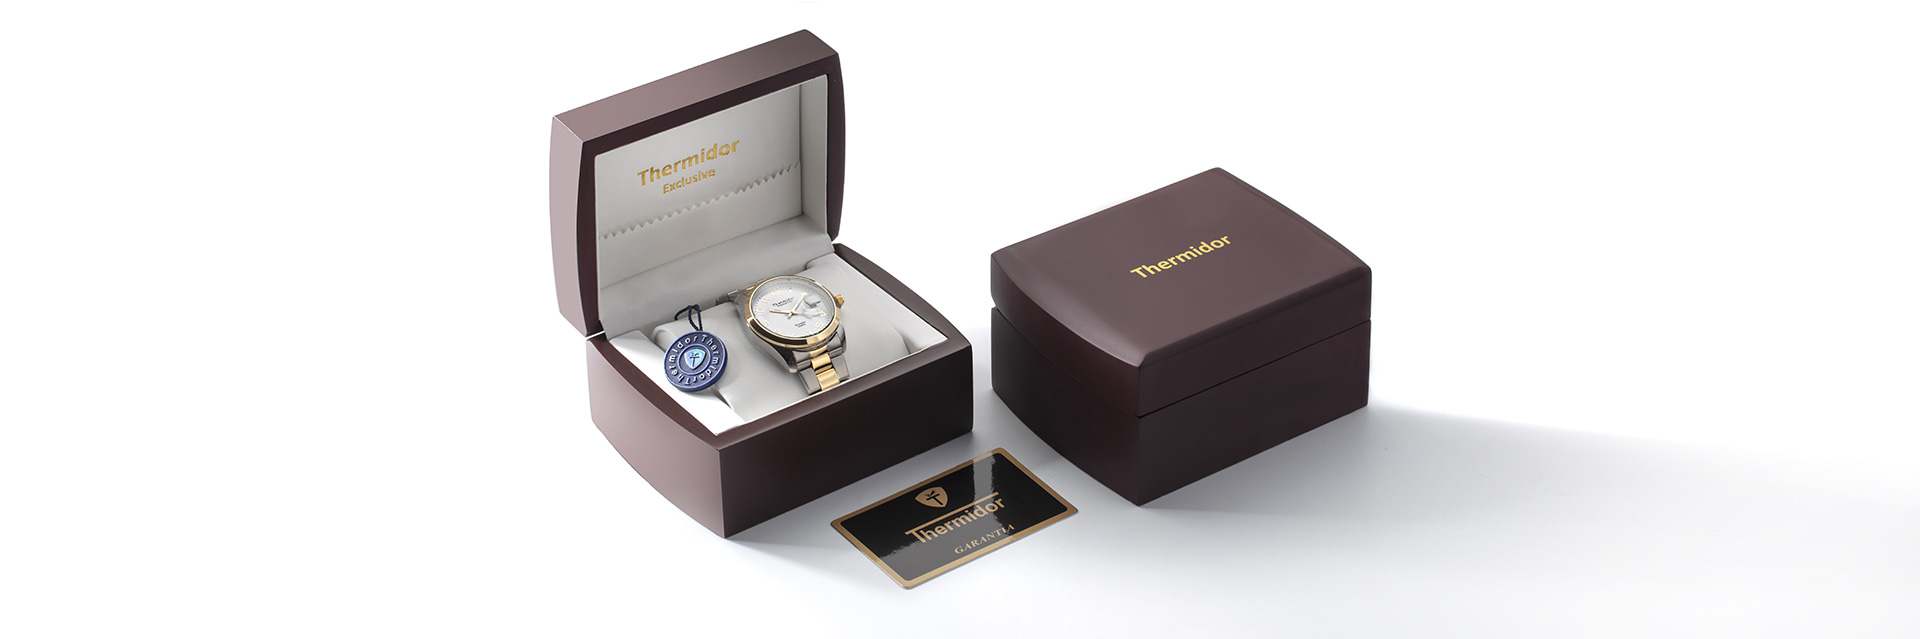 RELOJ THERMIDOR NEW PERPETUAL TIME - LUFTHOUS - RELOJES - PRODUCTOS LUFTHOUS - THERMIDOR